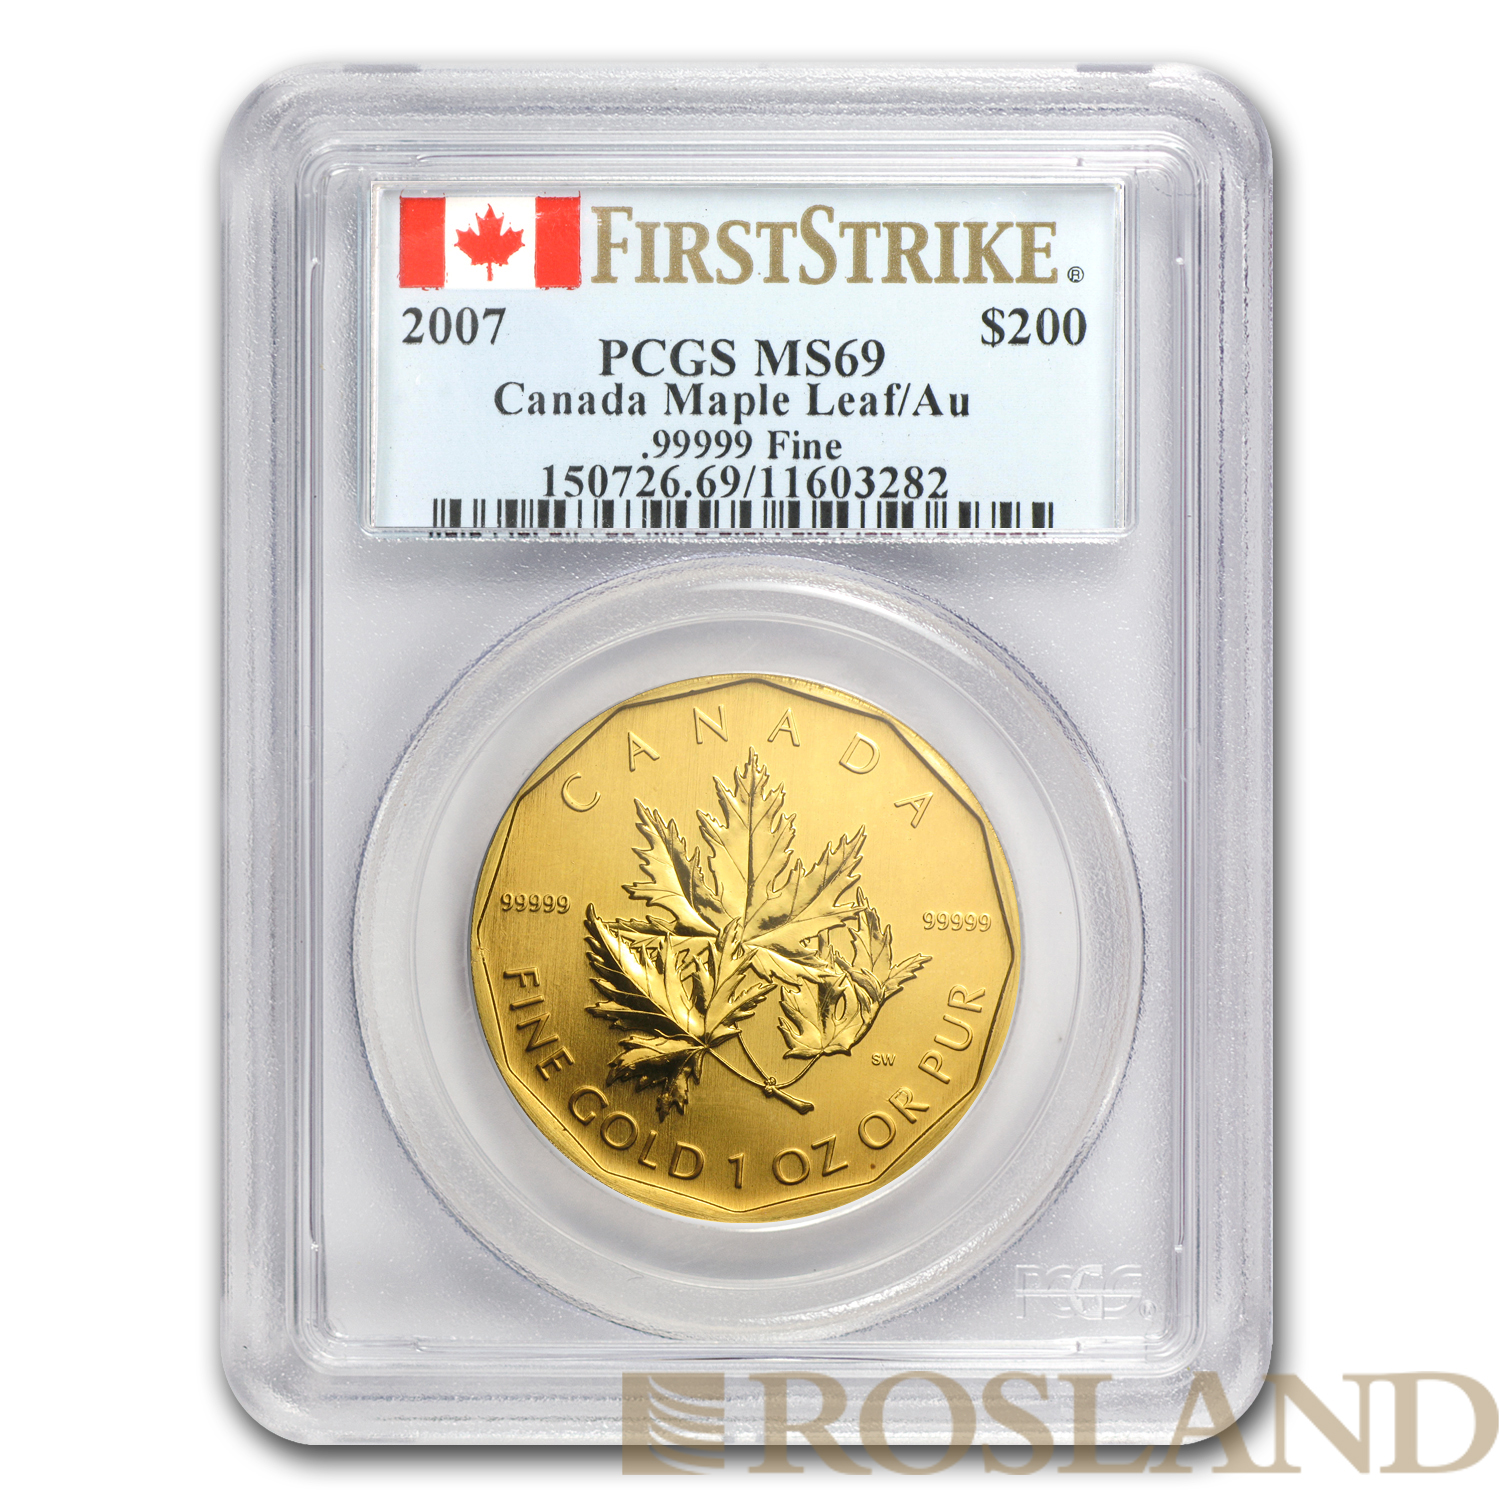 1 Unze Goldmünze Kanada Maple Leaf 2007 PCGS MS-69 First Strike